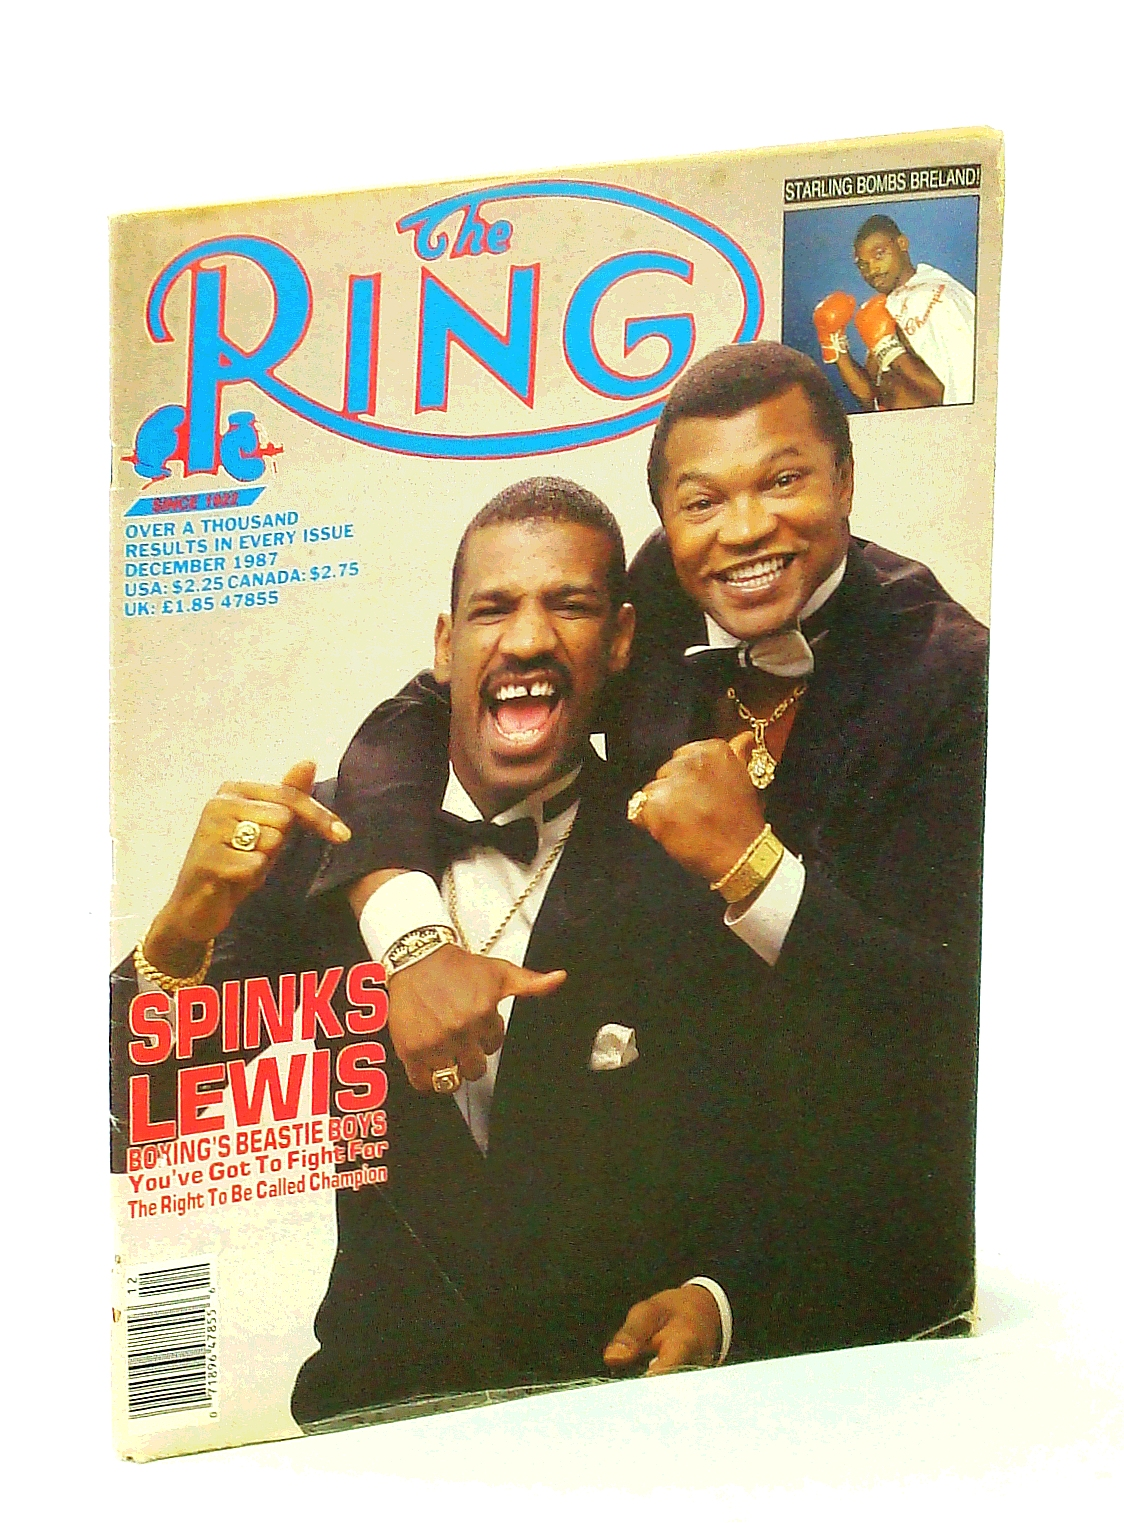 Image for THE RING Boxing Magazine. December 1987 Issue. Spinks & Lewis cover